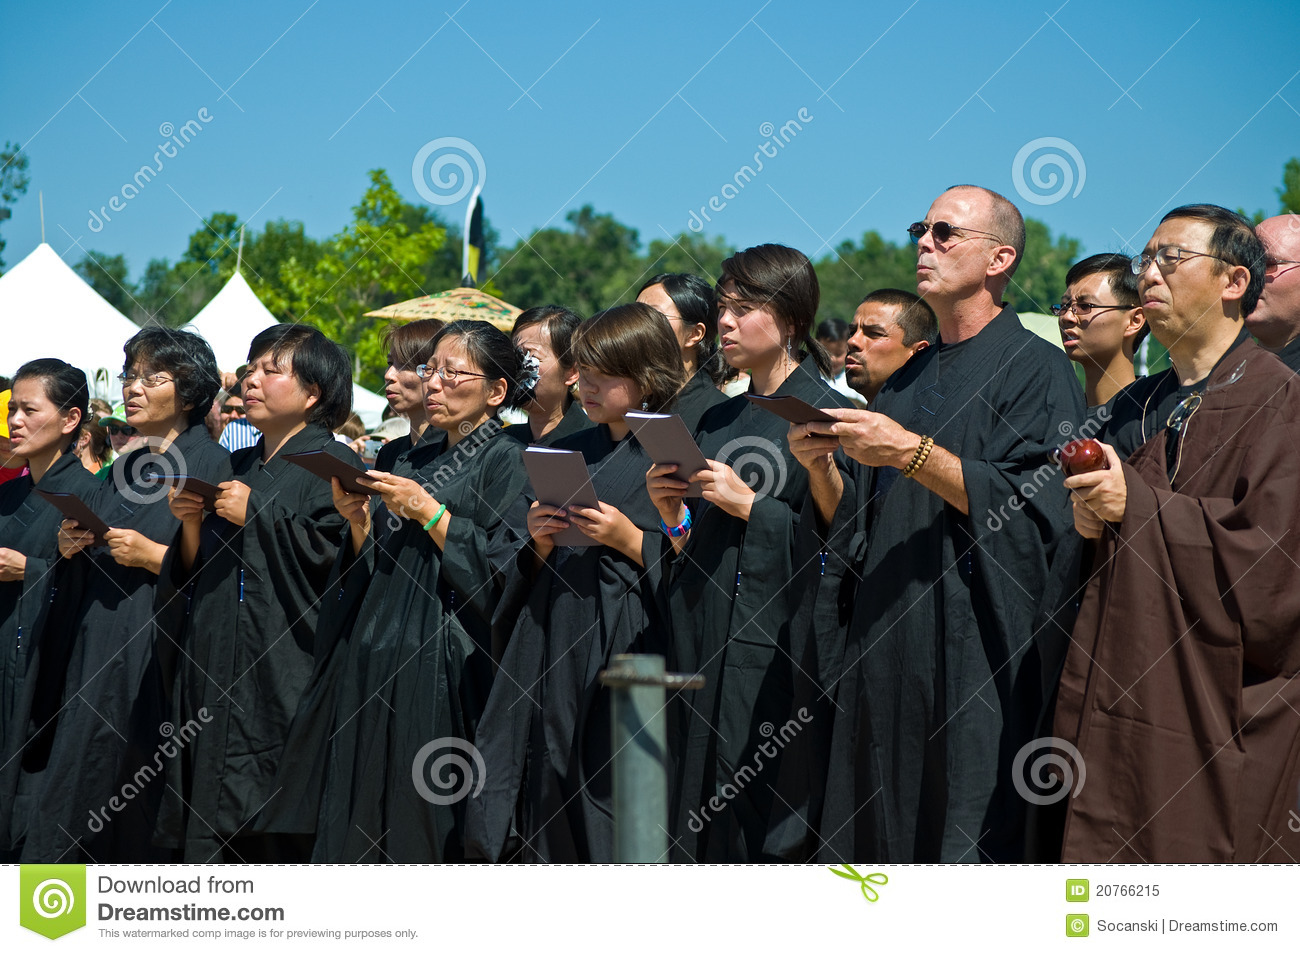 Group of Buddhist priests